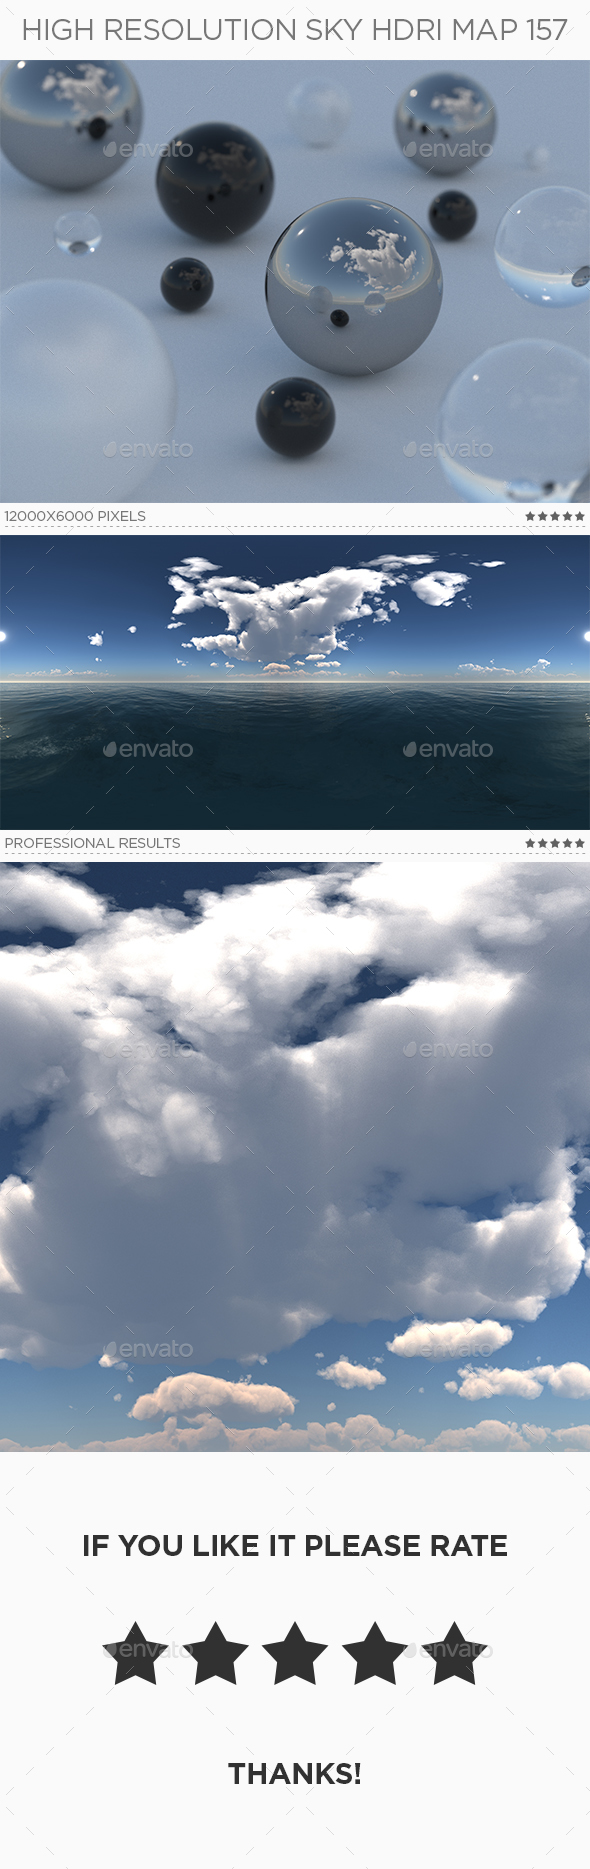 High Resolution Sky HDRi Map 157 - 3DOcean Item for Sale